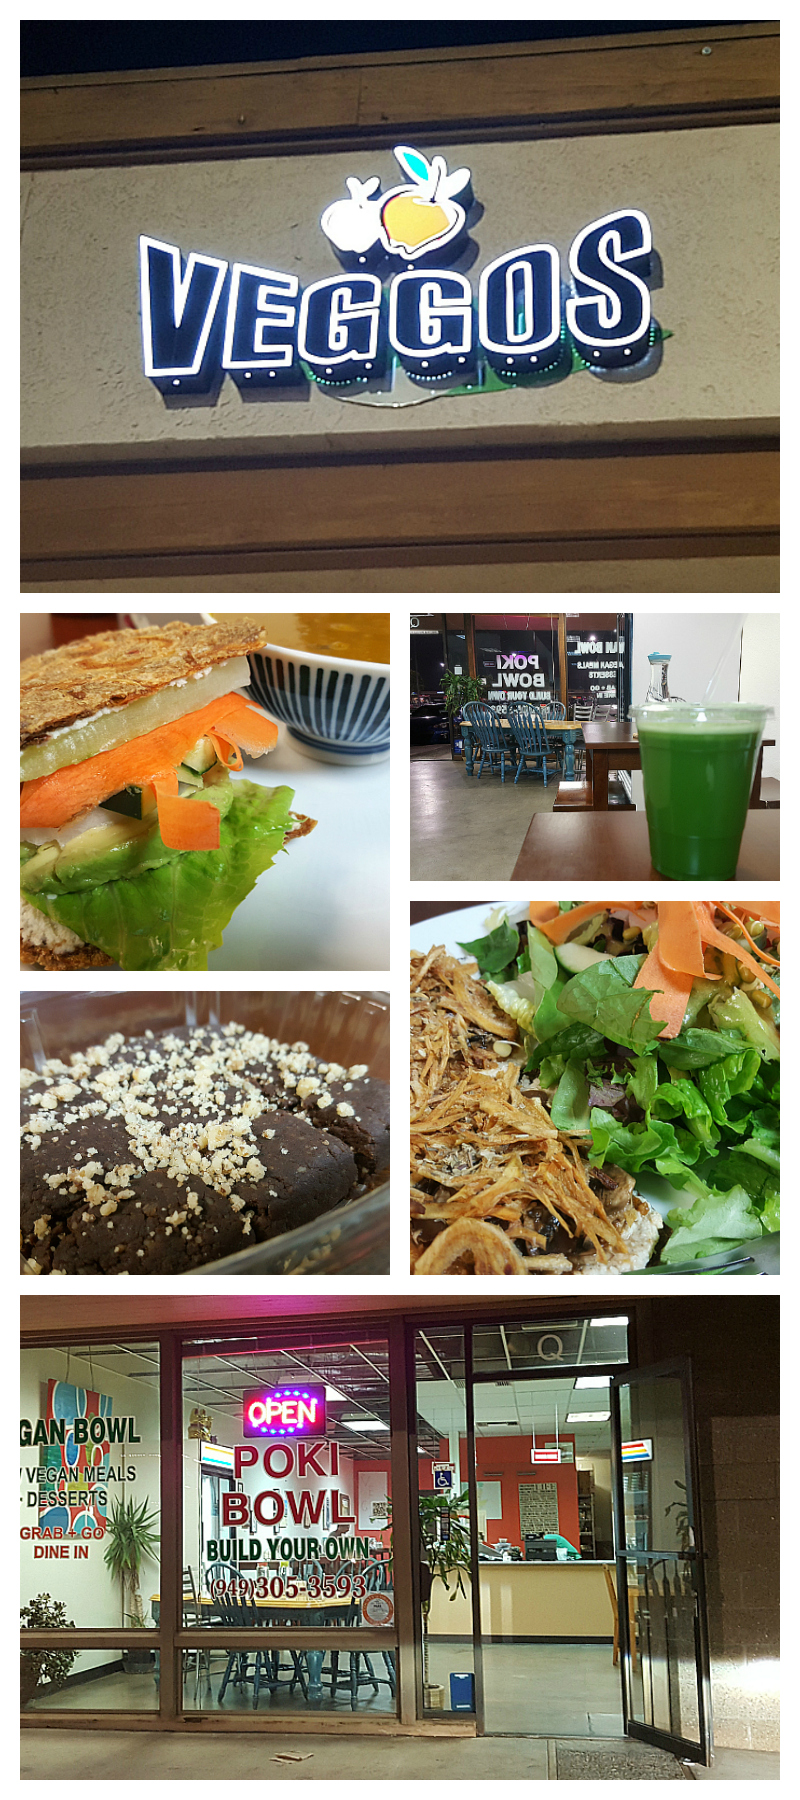 Veggos Vegan Raw Food Restaurant in Lake Forest, California